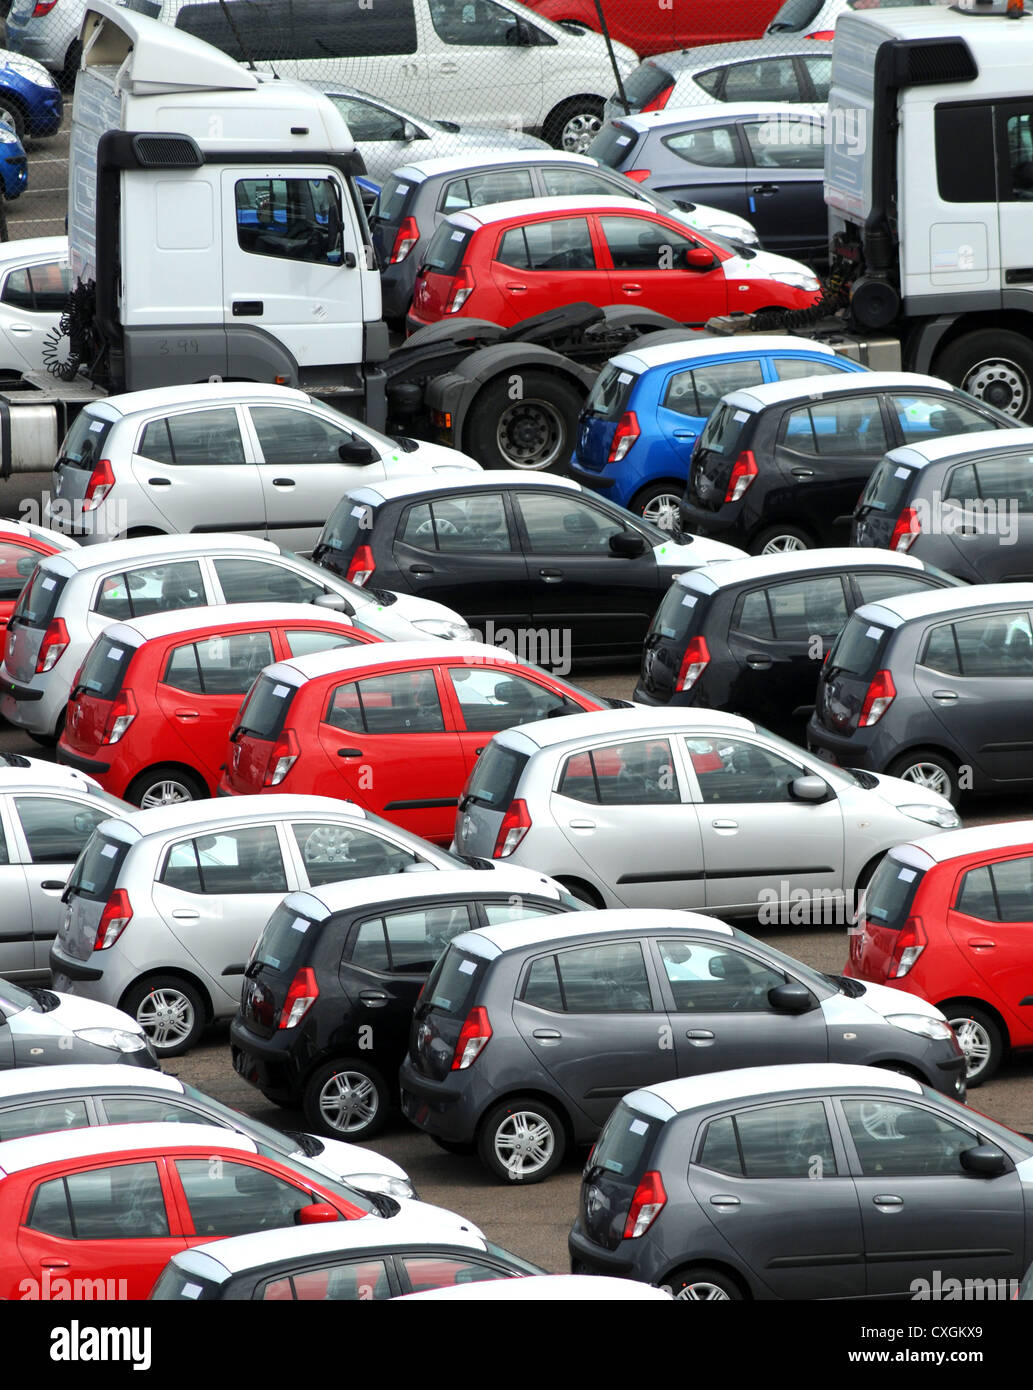 rows of newly imported multicoloured vehicles, cars and lorrys - Stock Image